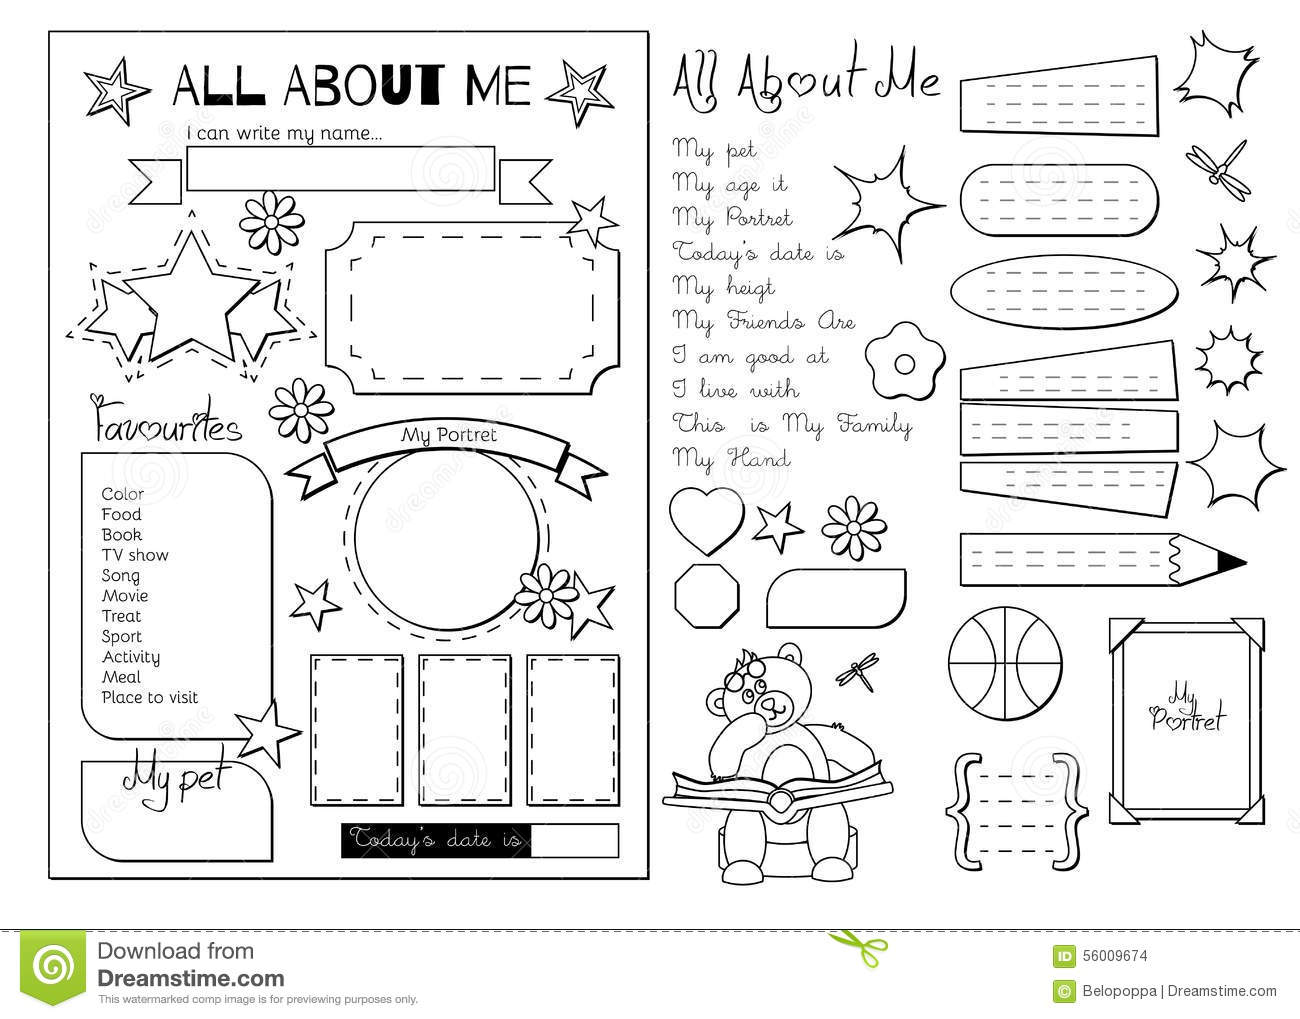 All About Me School Printable Stock Vector